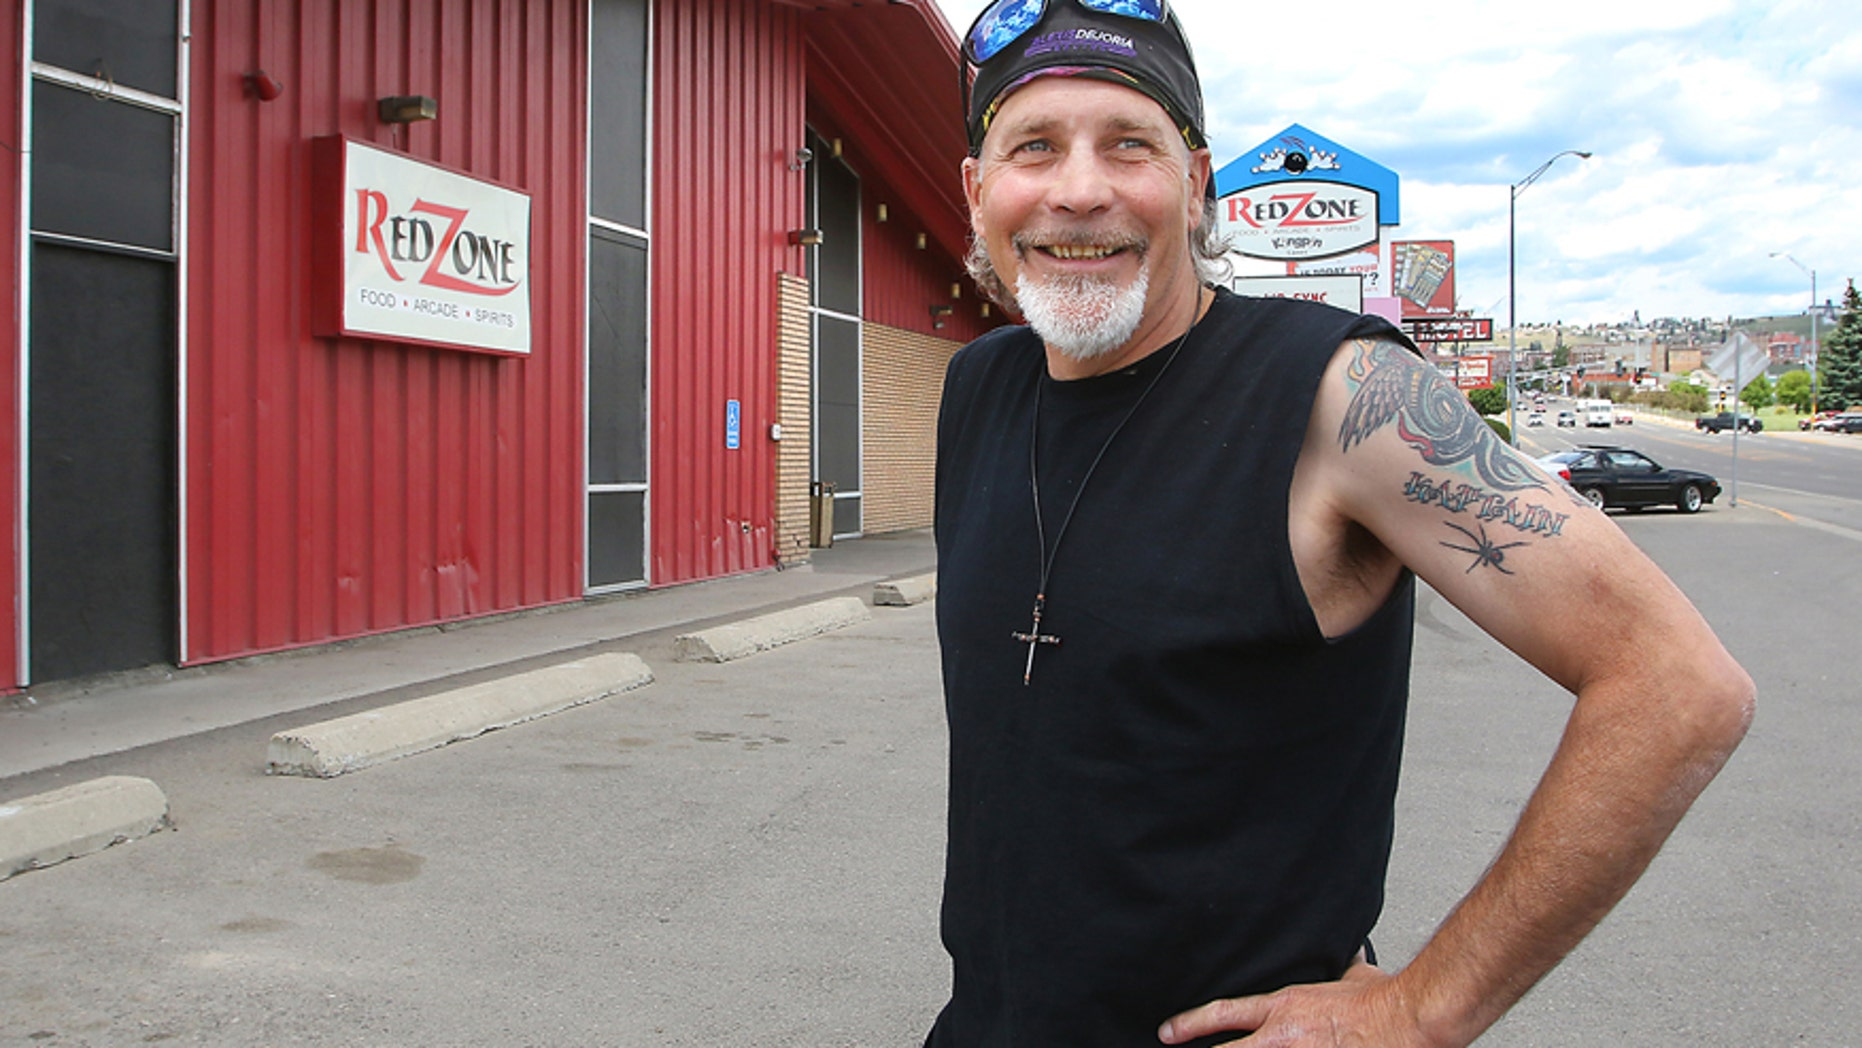 Motorcycle daredevil Robbie Knievel has announced Tuesday, June 23, 2015, that he plans to jump over the Red Zone, during Evel Knievel Day's this July in Butte, Mont.